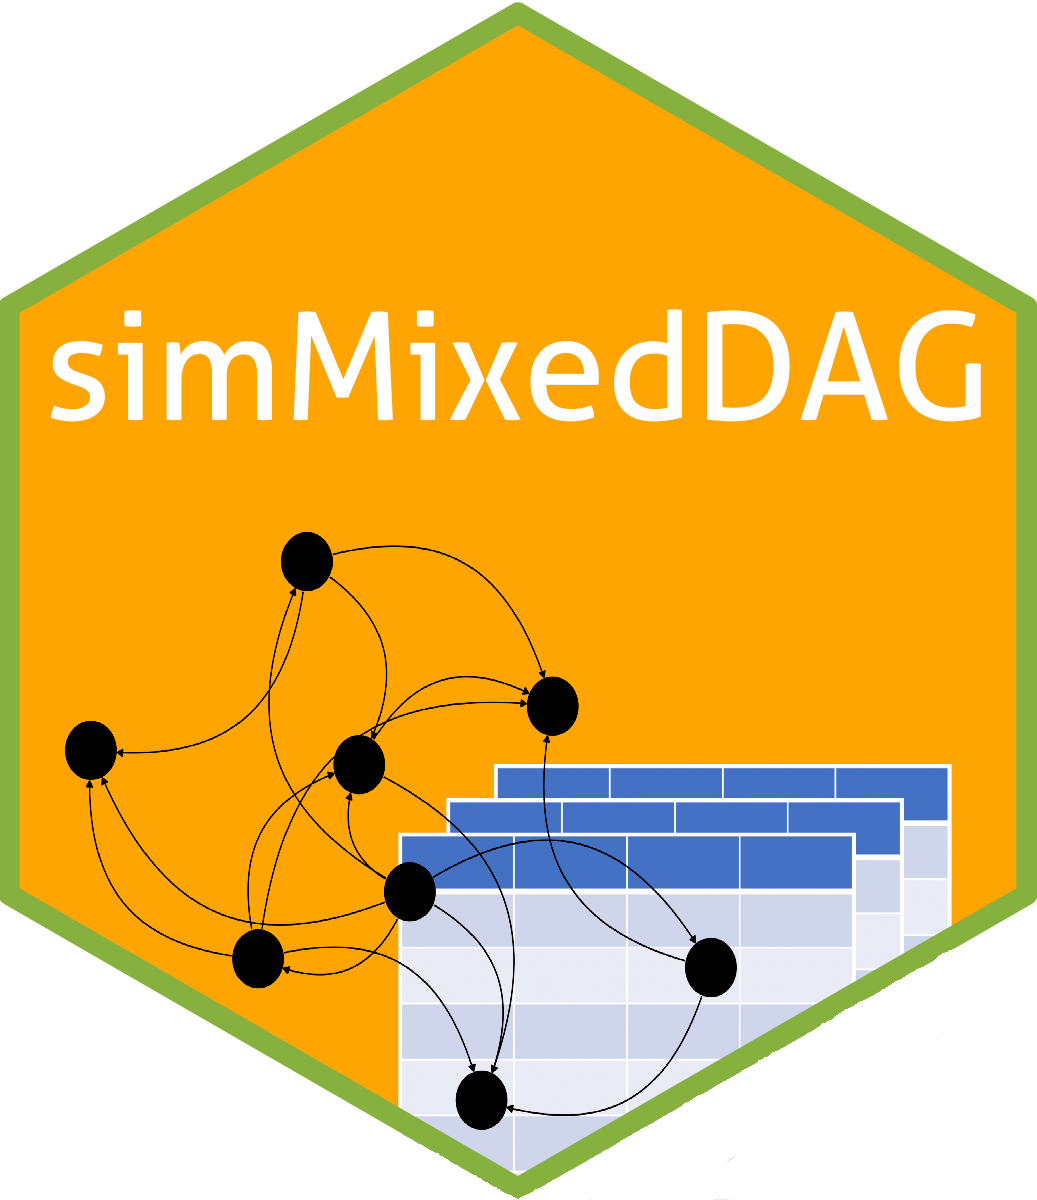 """""""Real life"""" DAG simulation using the simMixedDAG package"""